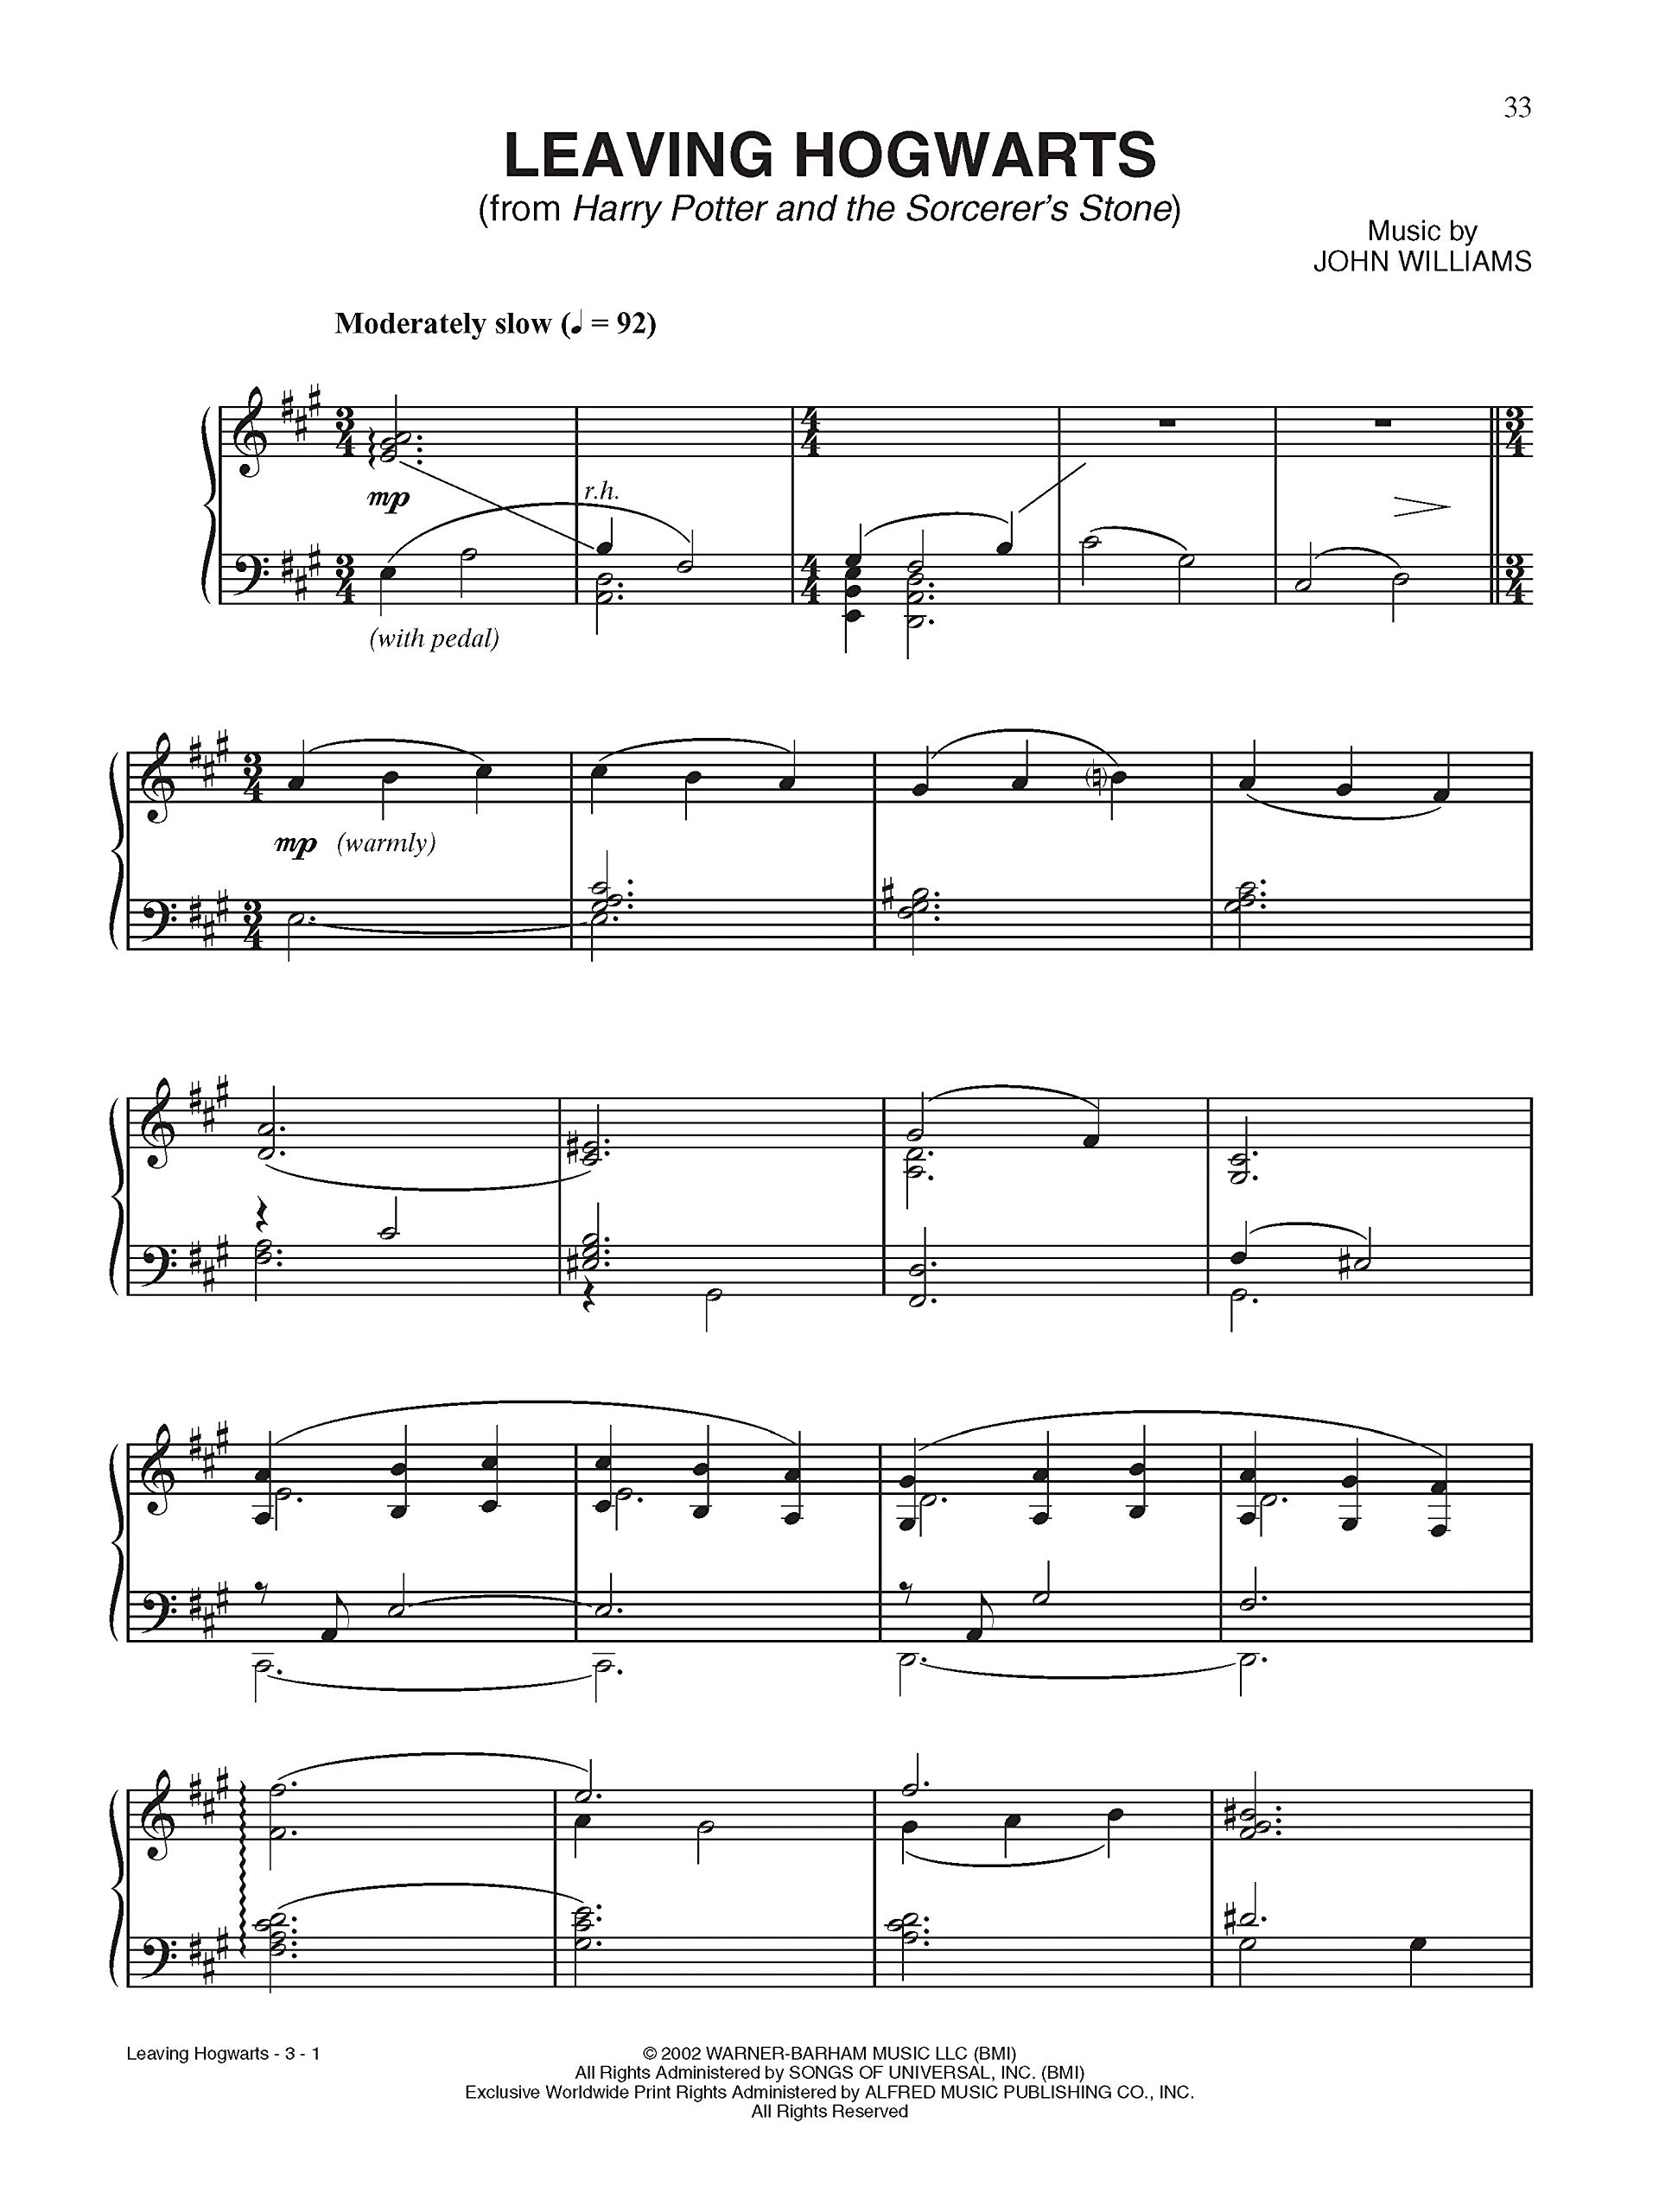 HARRY POTTER -- SHEET MUSIC FR Harry Potter Sheet Mucic: Amazon.es ...